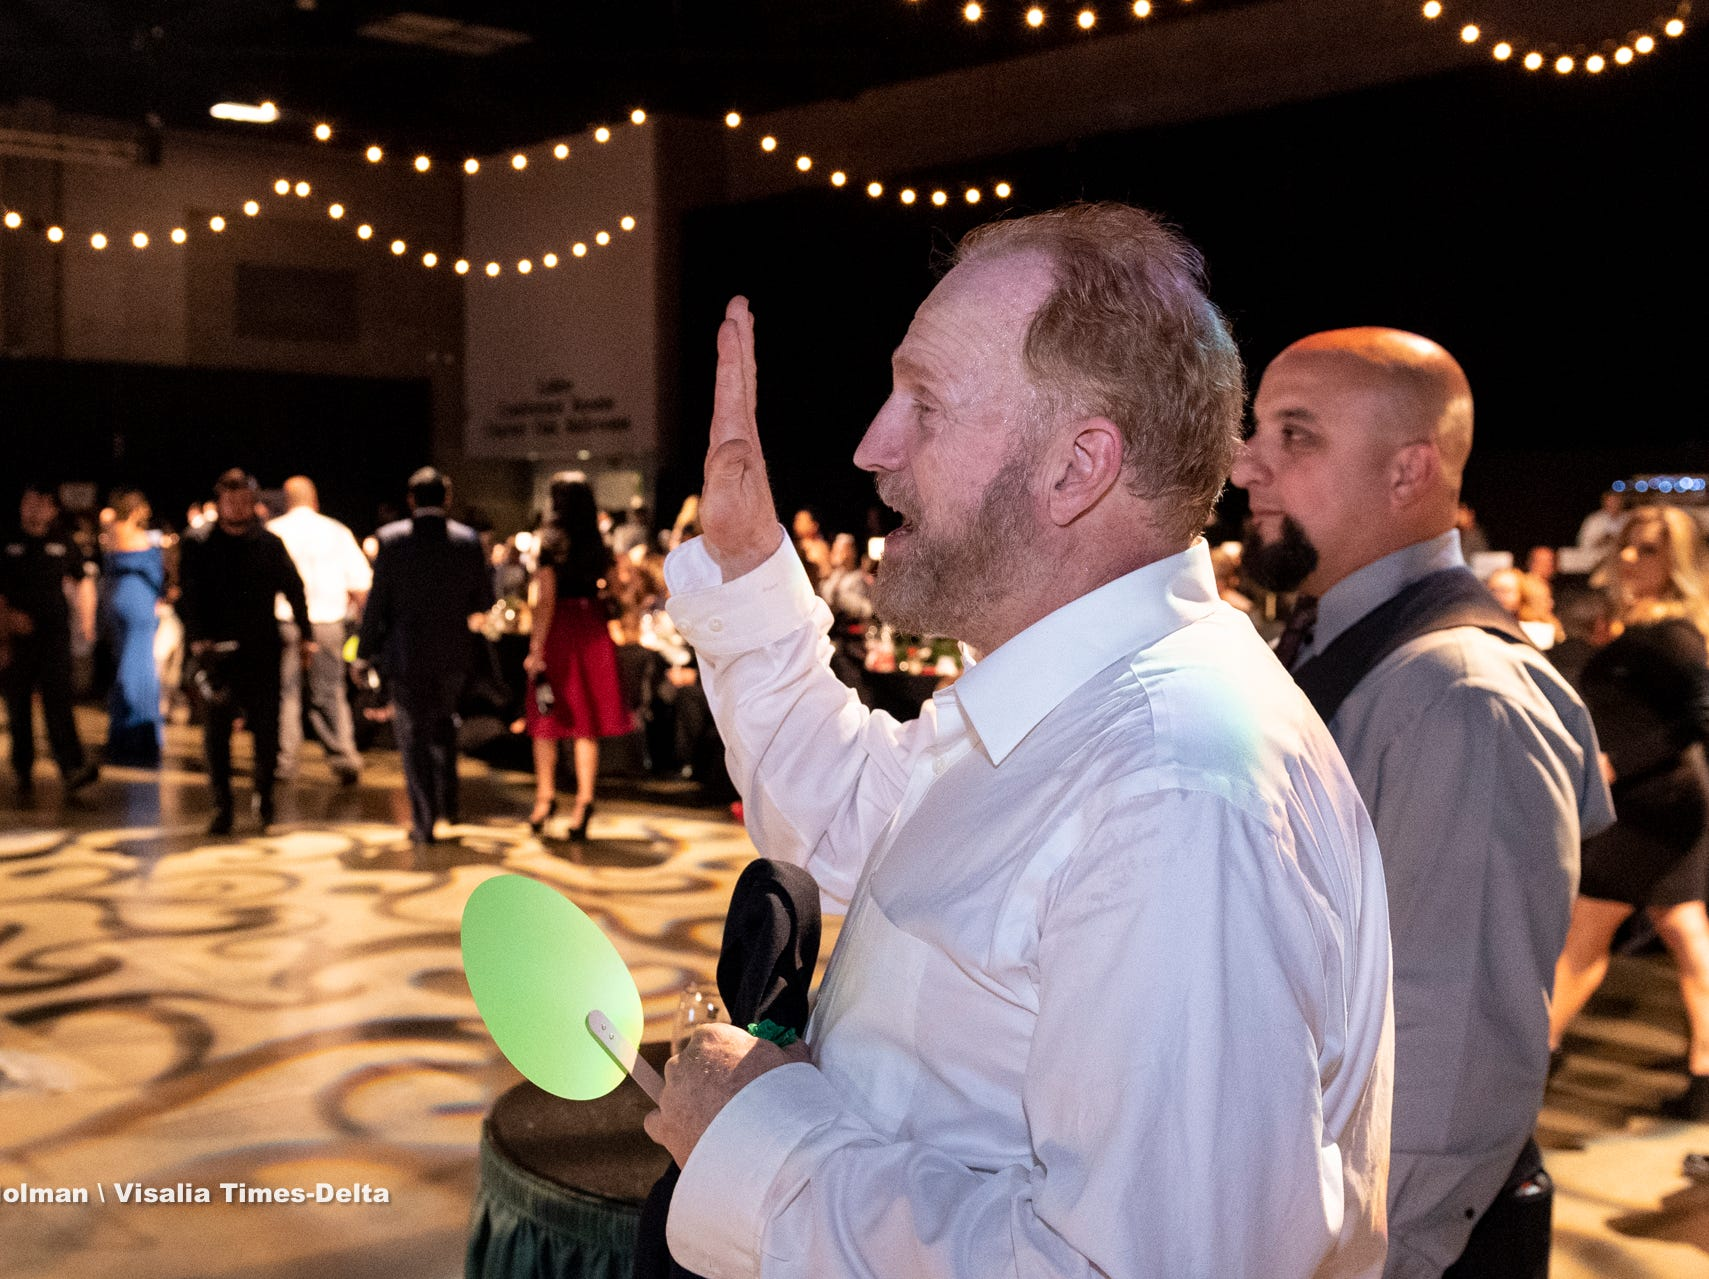 """A $5,000 bid is offered during Visalia's 38th Annual Christmas Tree Auction on Friday, December 7, 2018. This year's theme was """"A Holiday Affair."""" The live auctions alone generated nearly $60,000 in bids."""